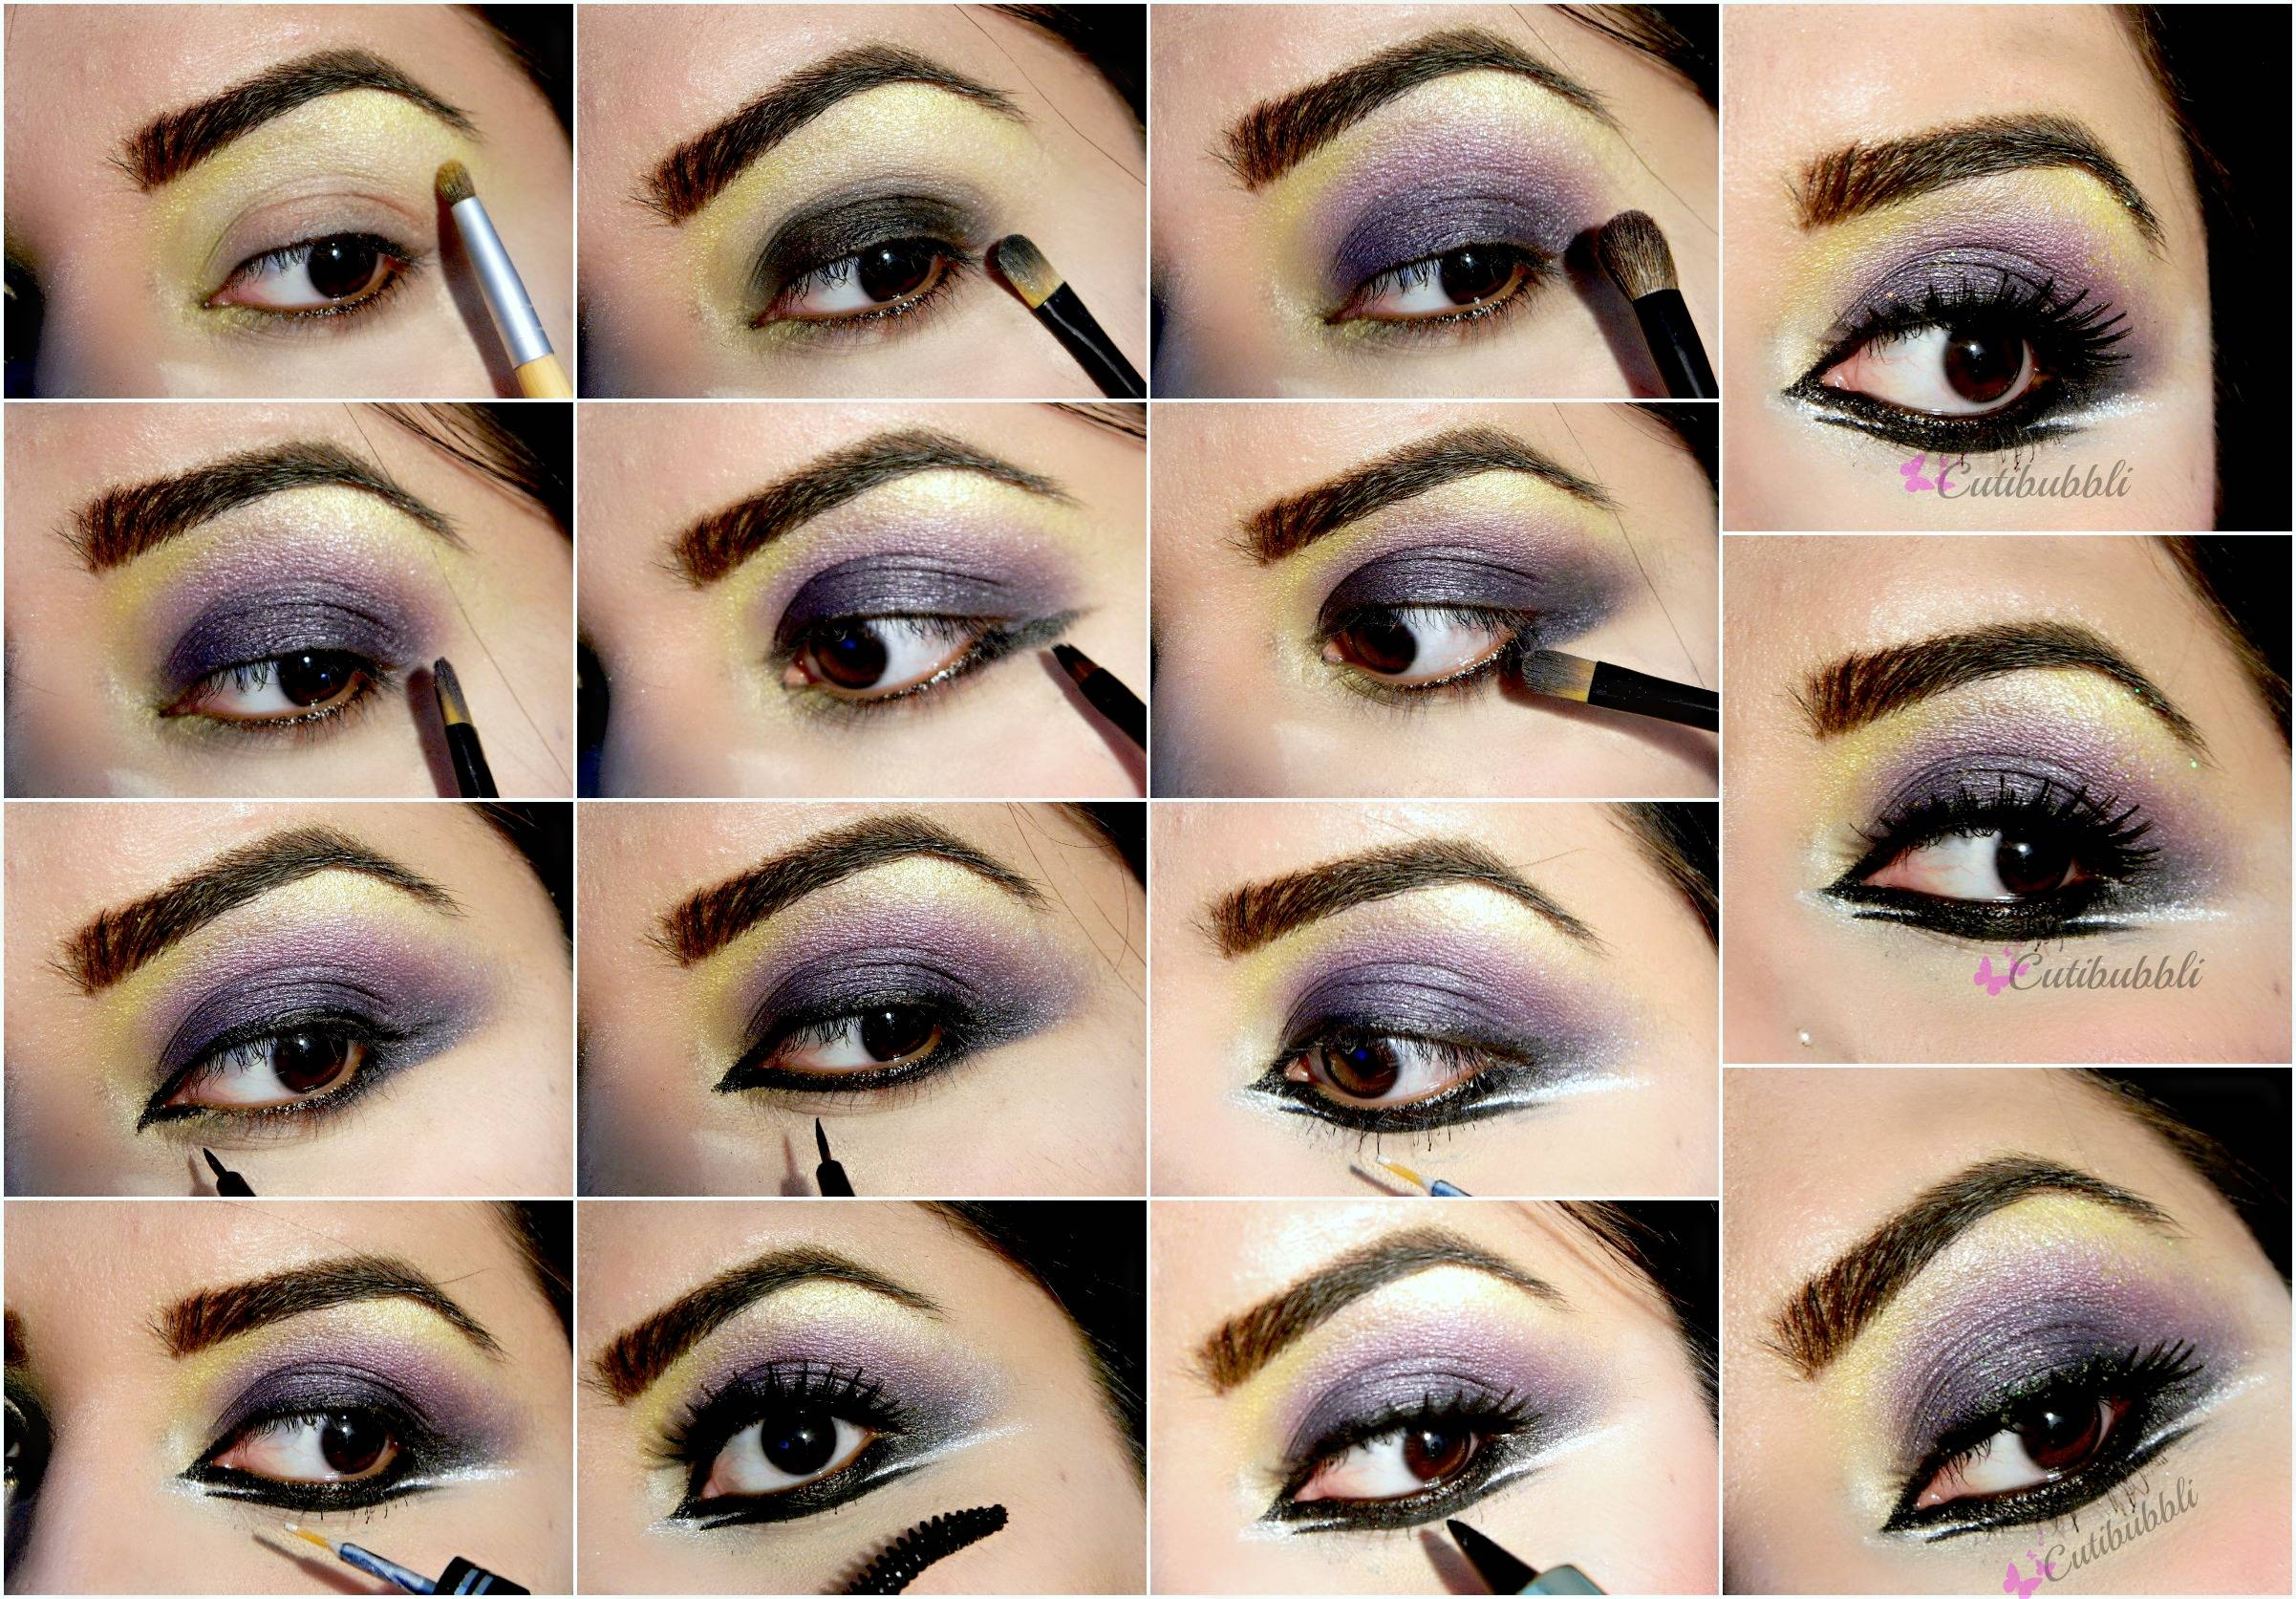 327084-makeup-eye-makeup-tutorial